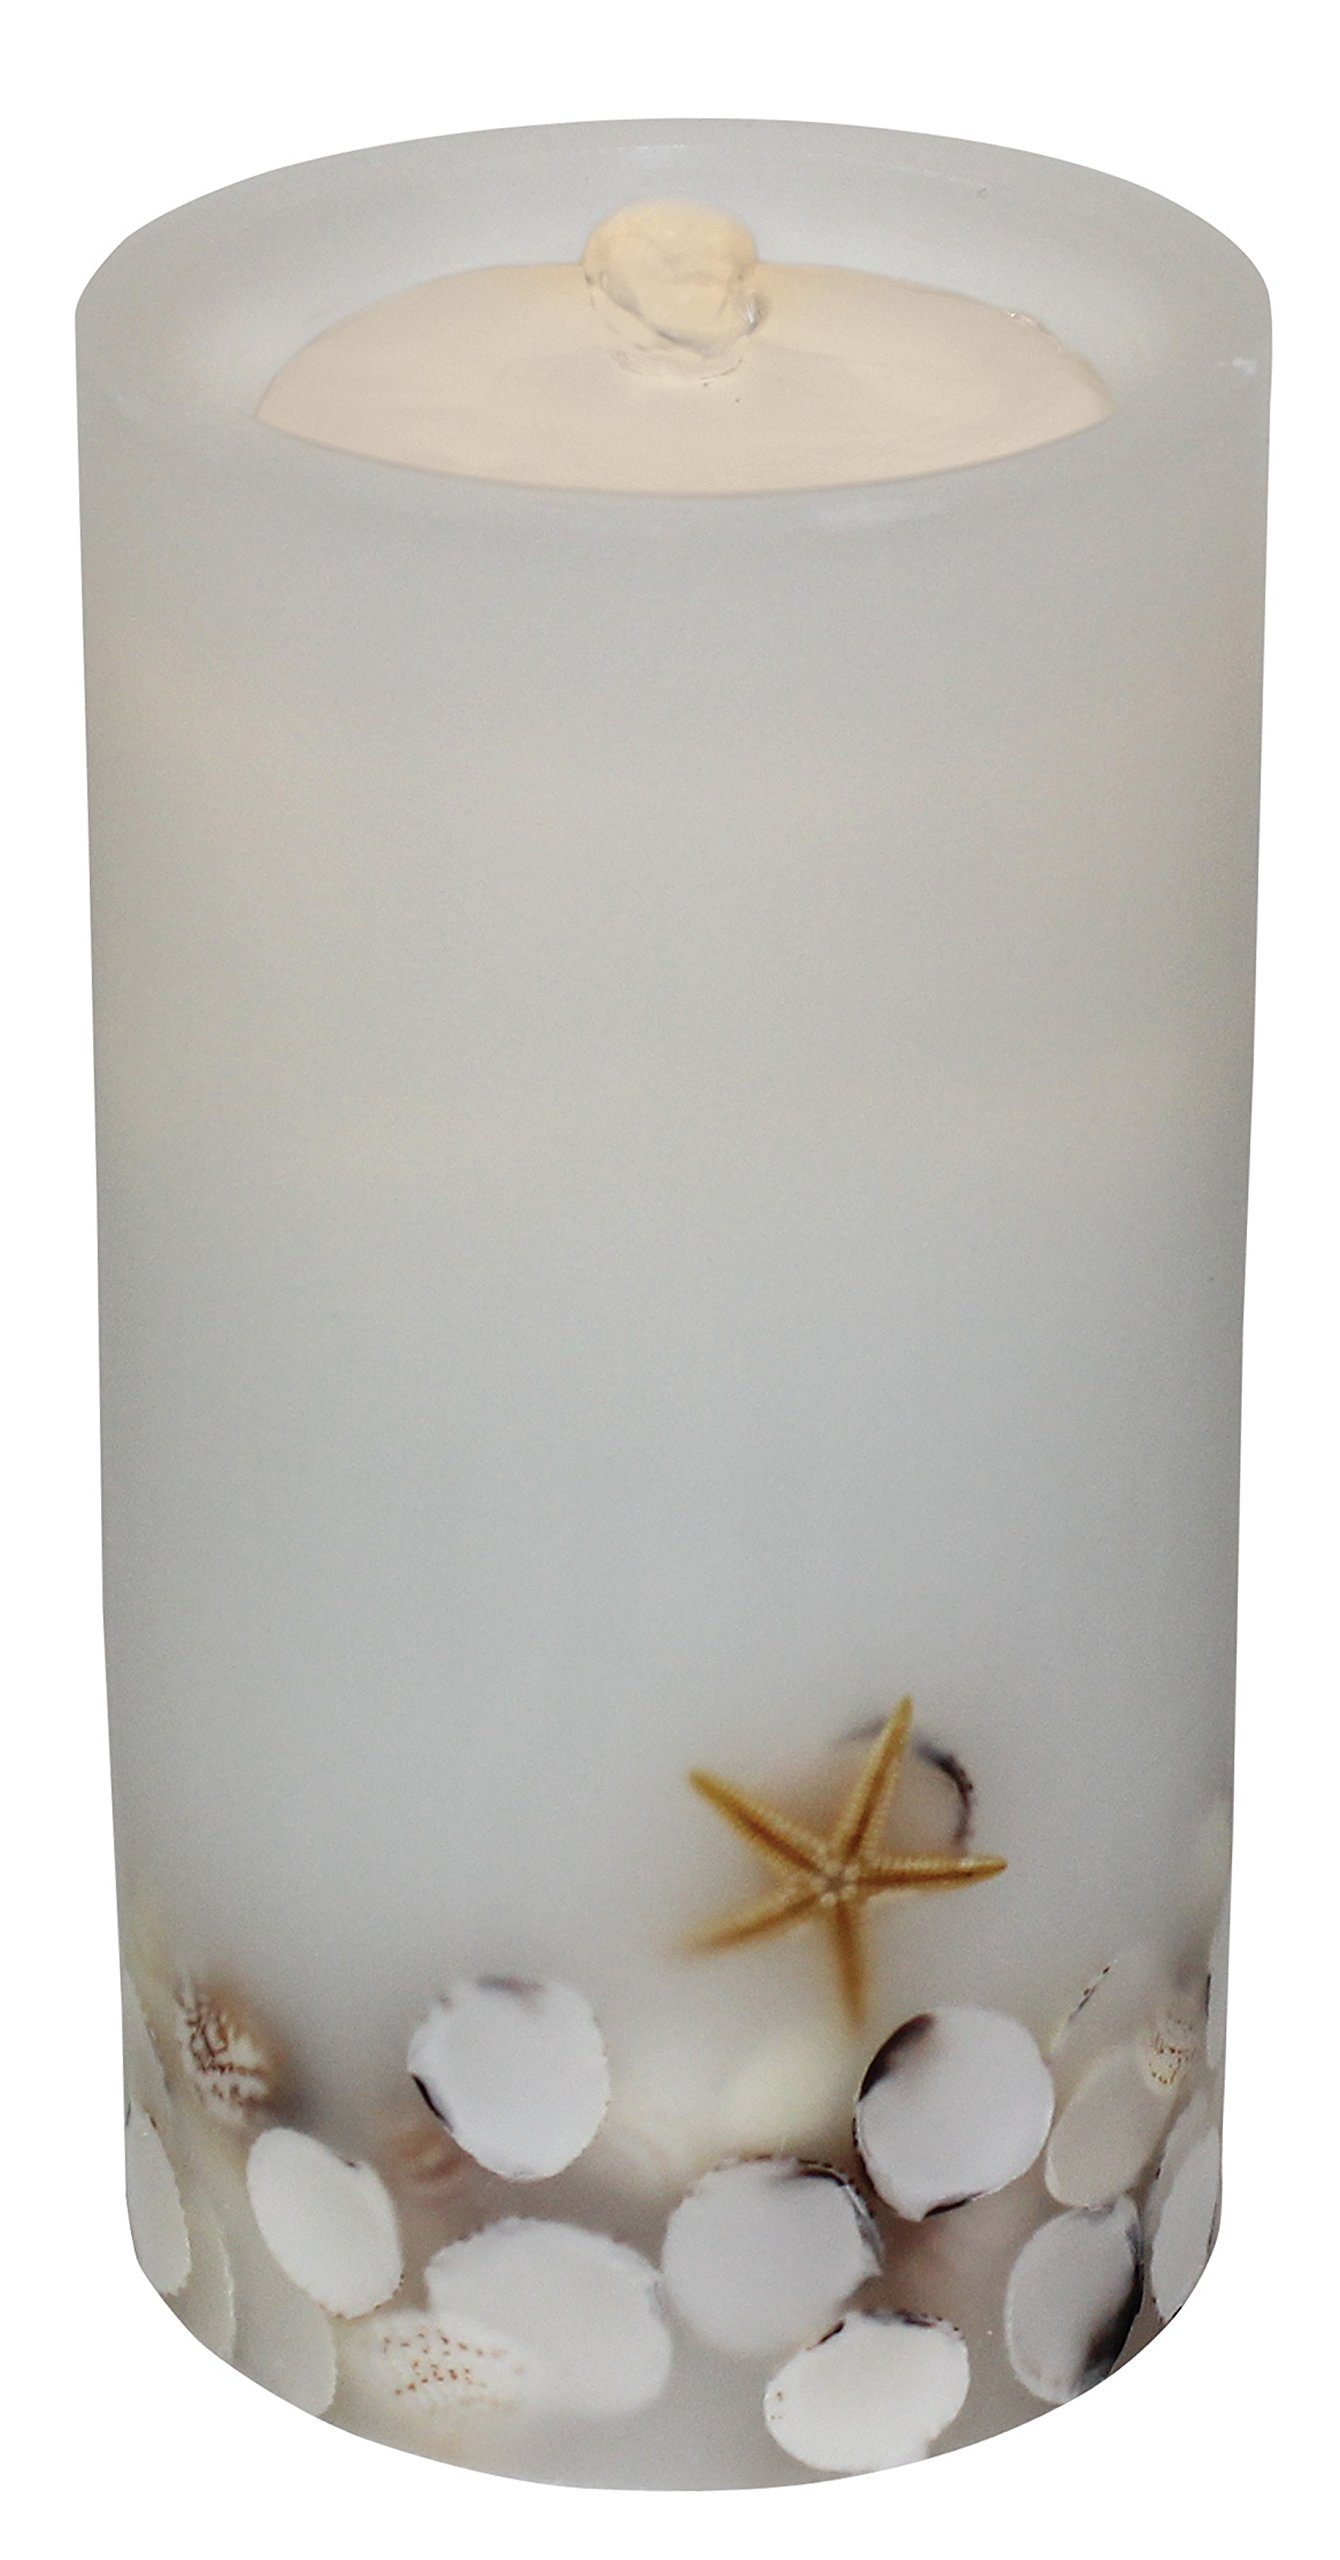 Bethlehem Lighting GKI AQUAFLAME White Seashell Flameless Candle/Fountain by Bethlehem Lighting